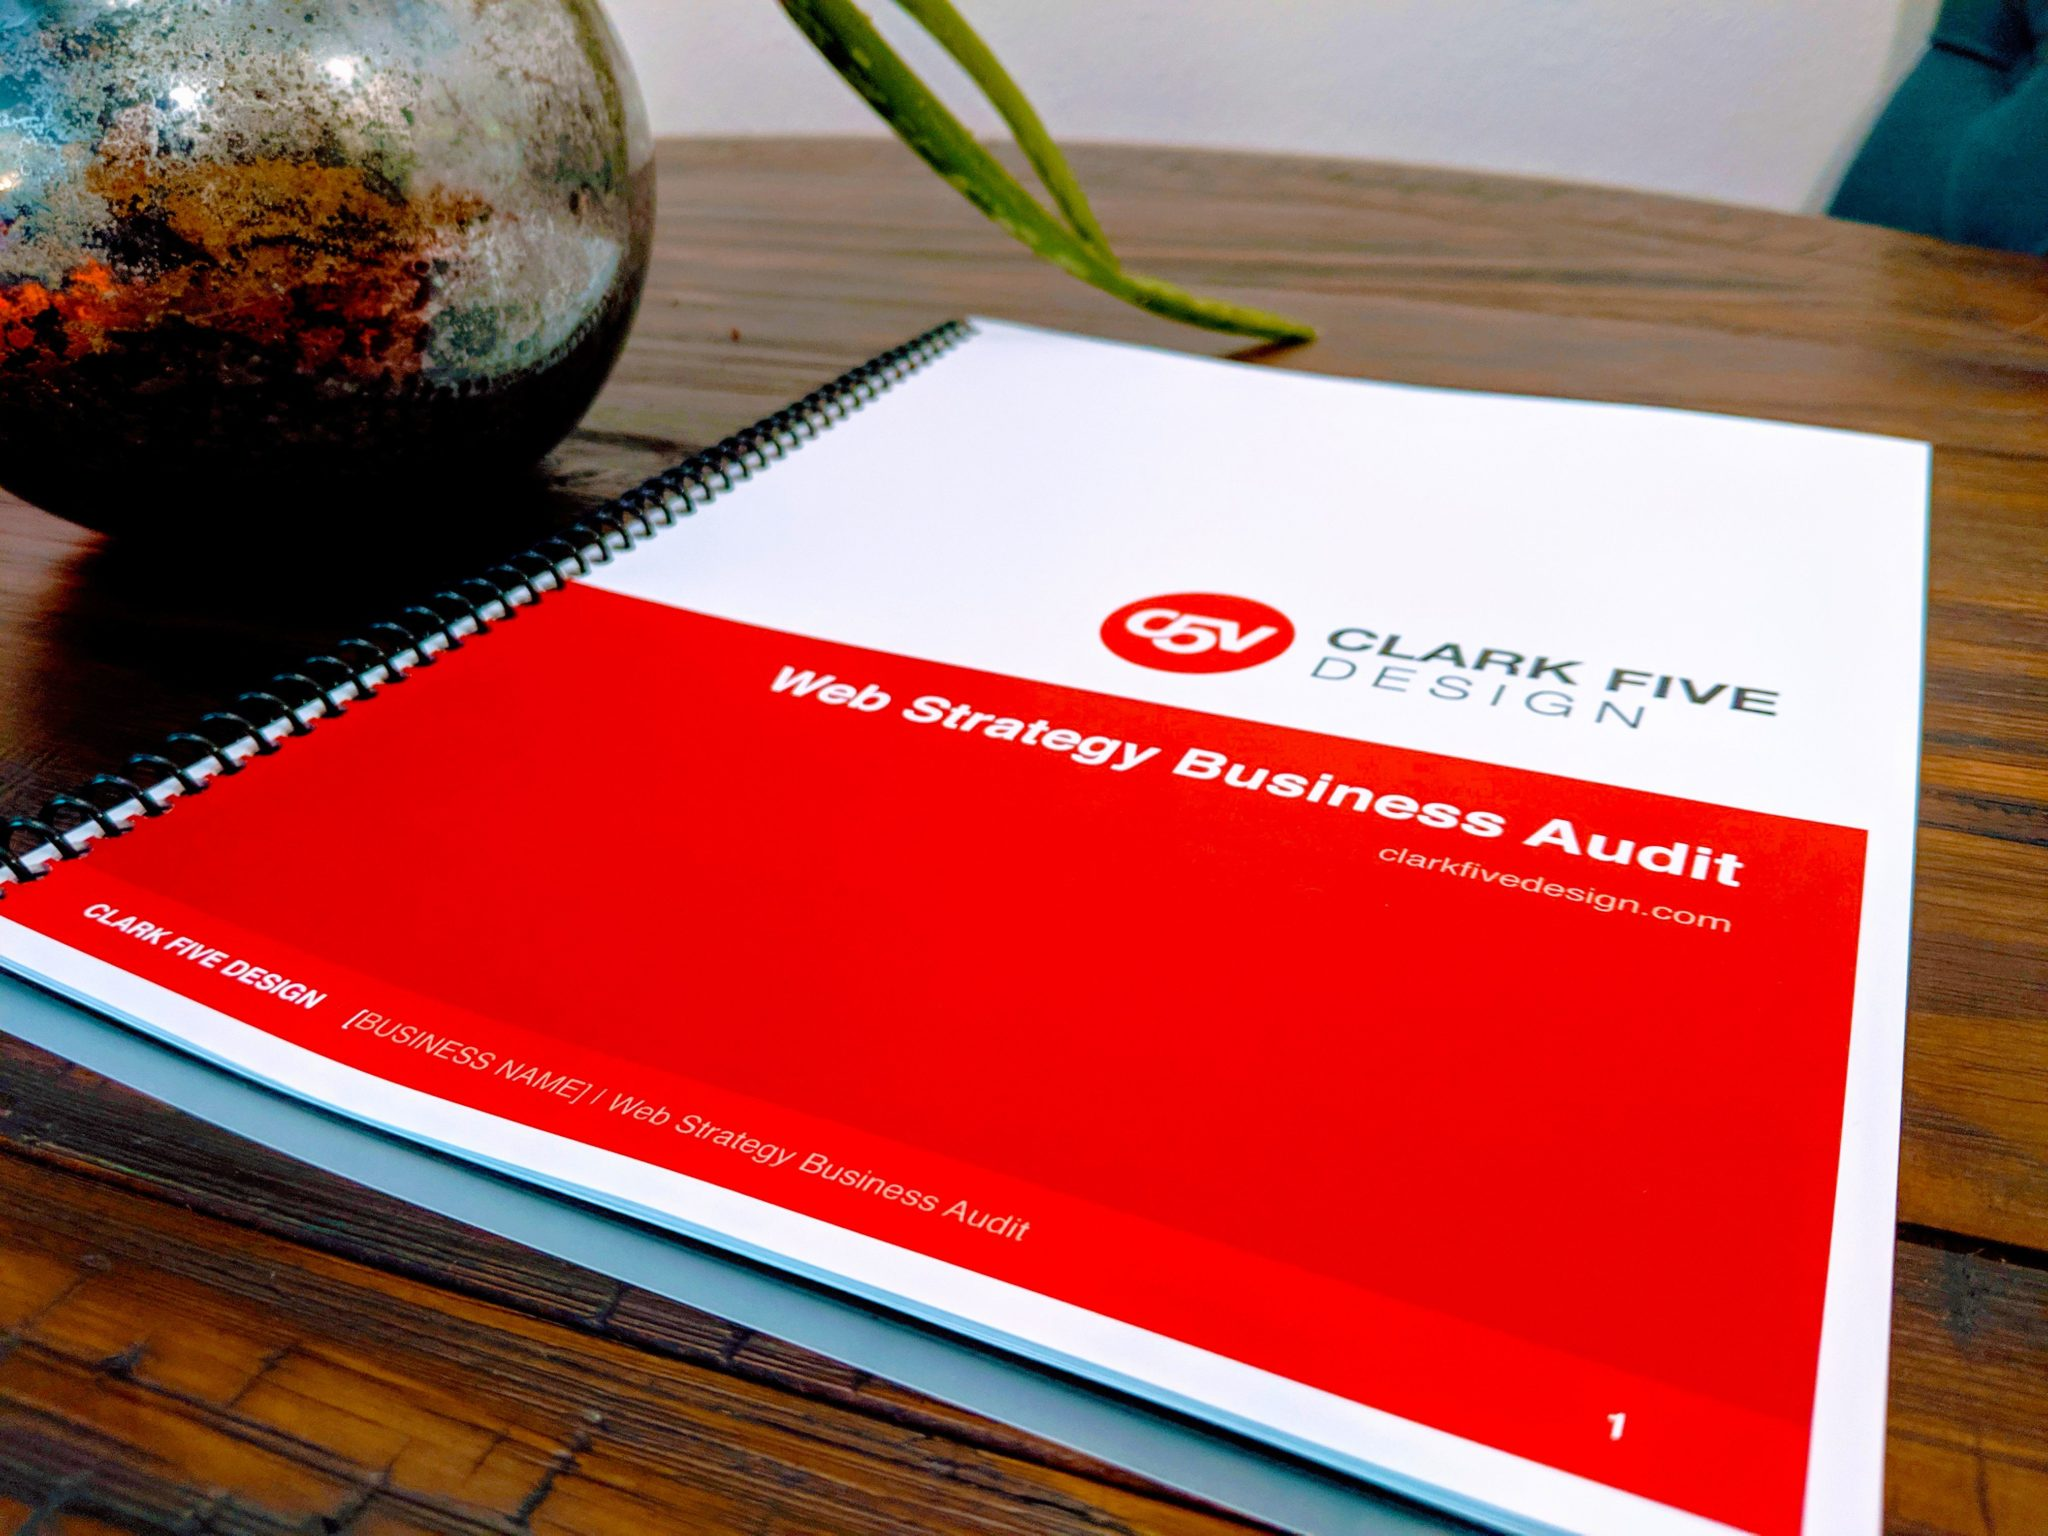 Clark Five Design, Free Web Strategy & Audit for your small business